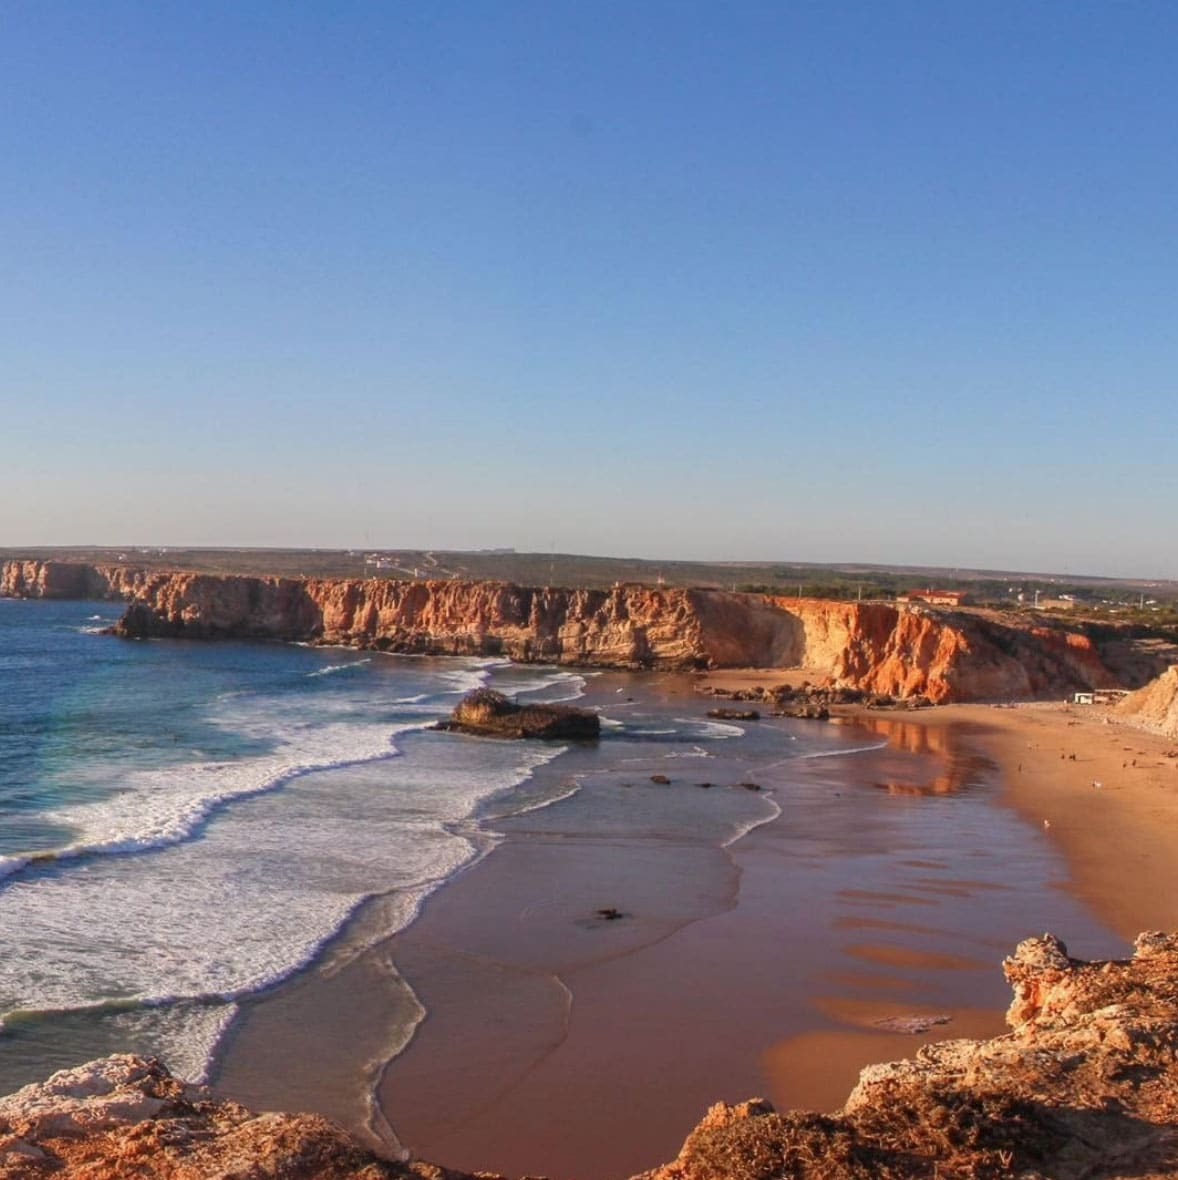 View of the beach from the top of the risk in Algarve, Portugal